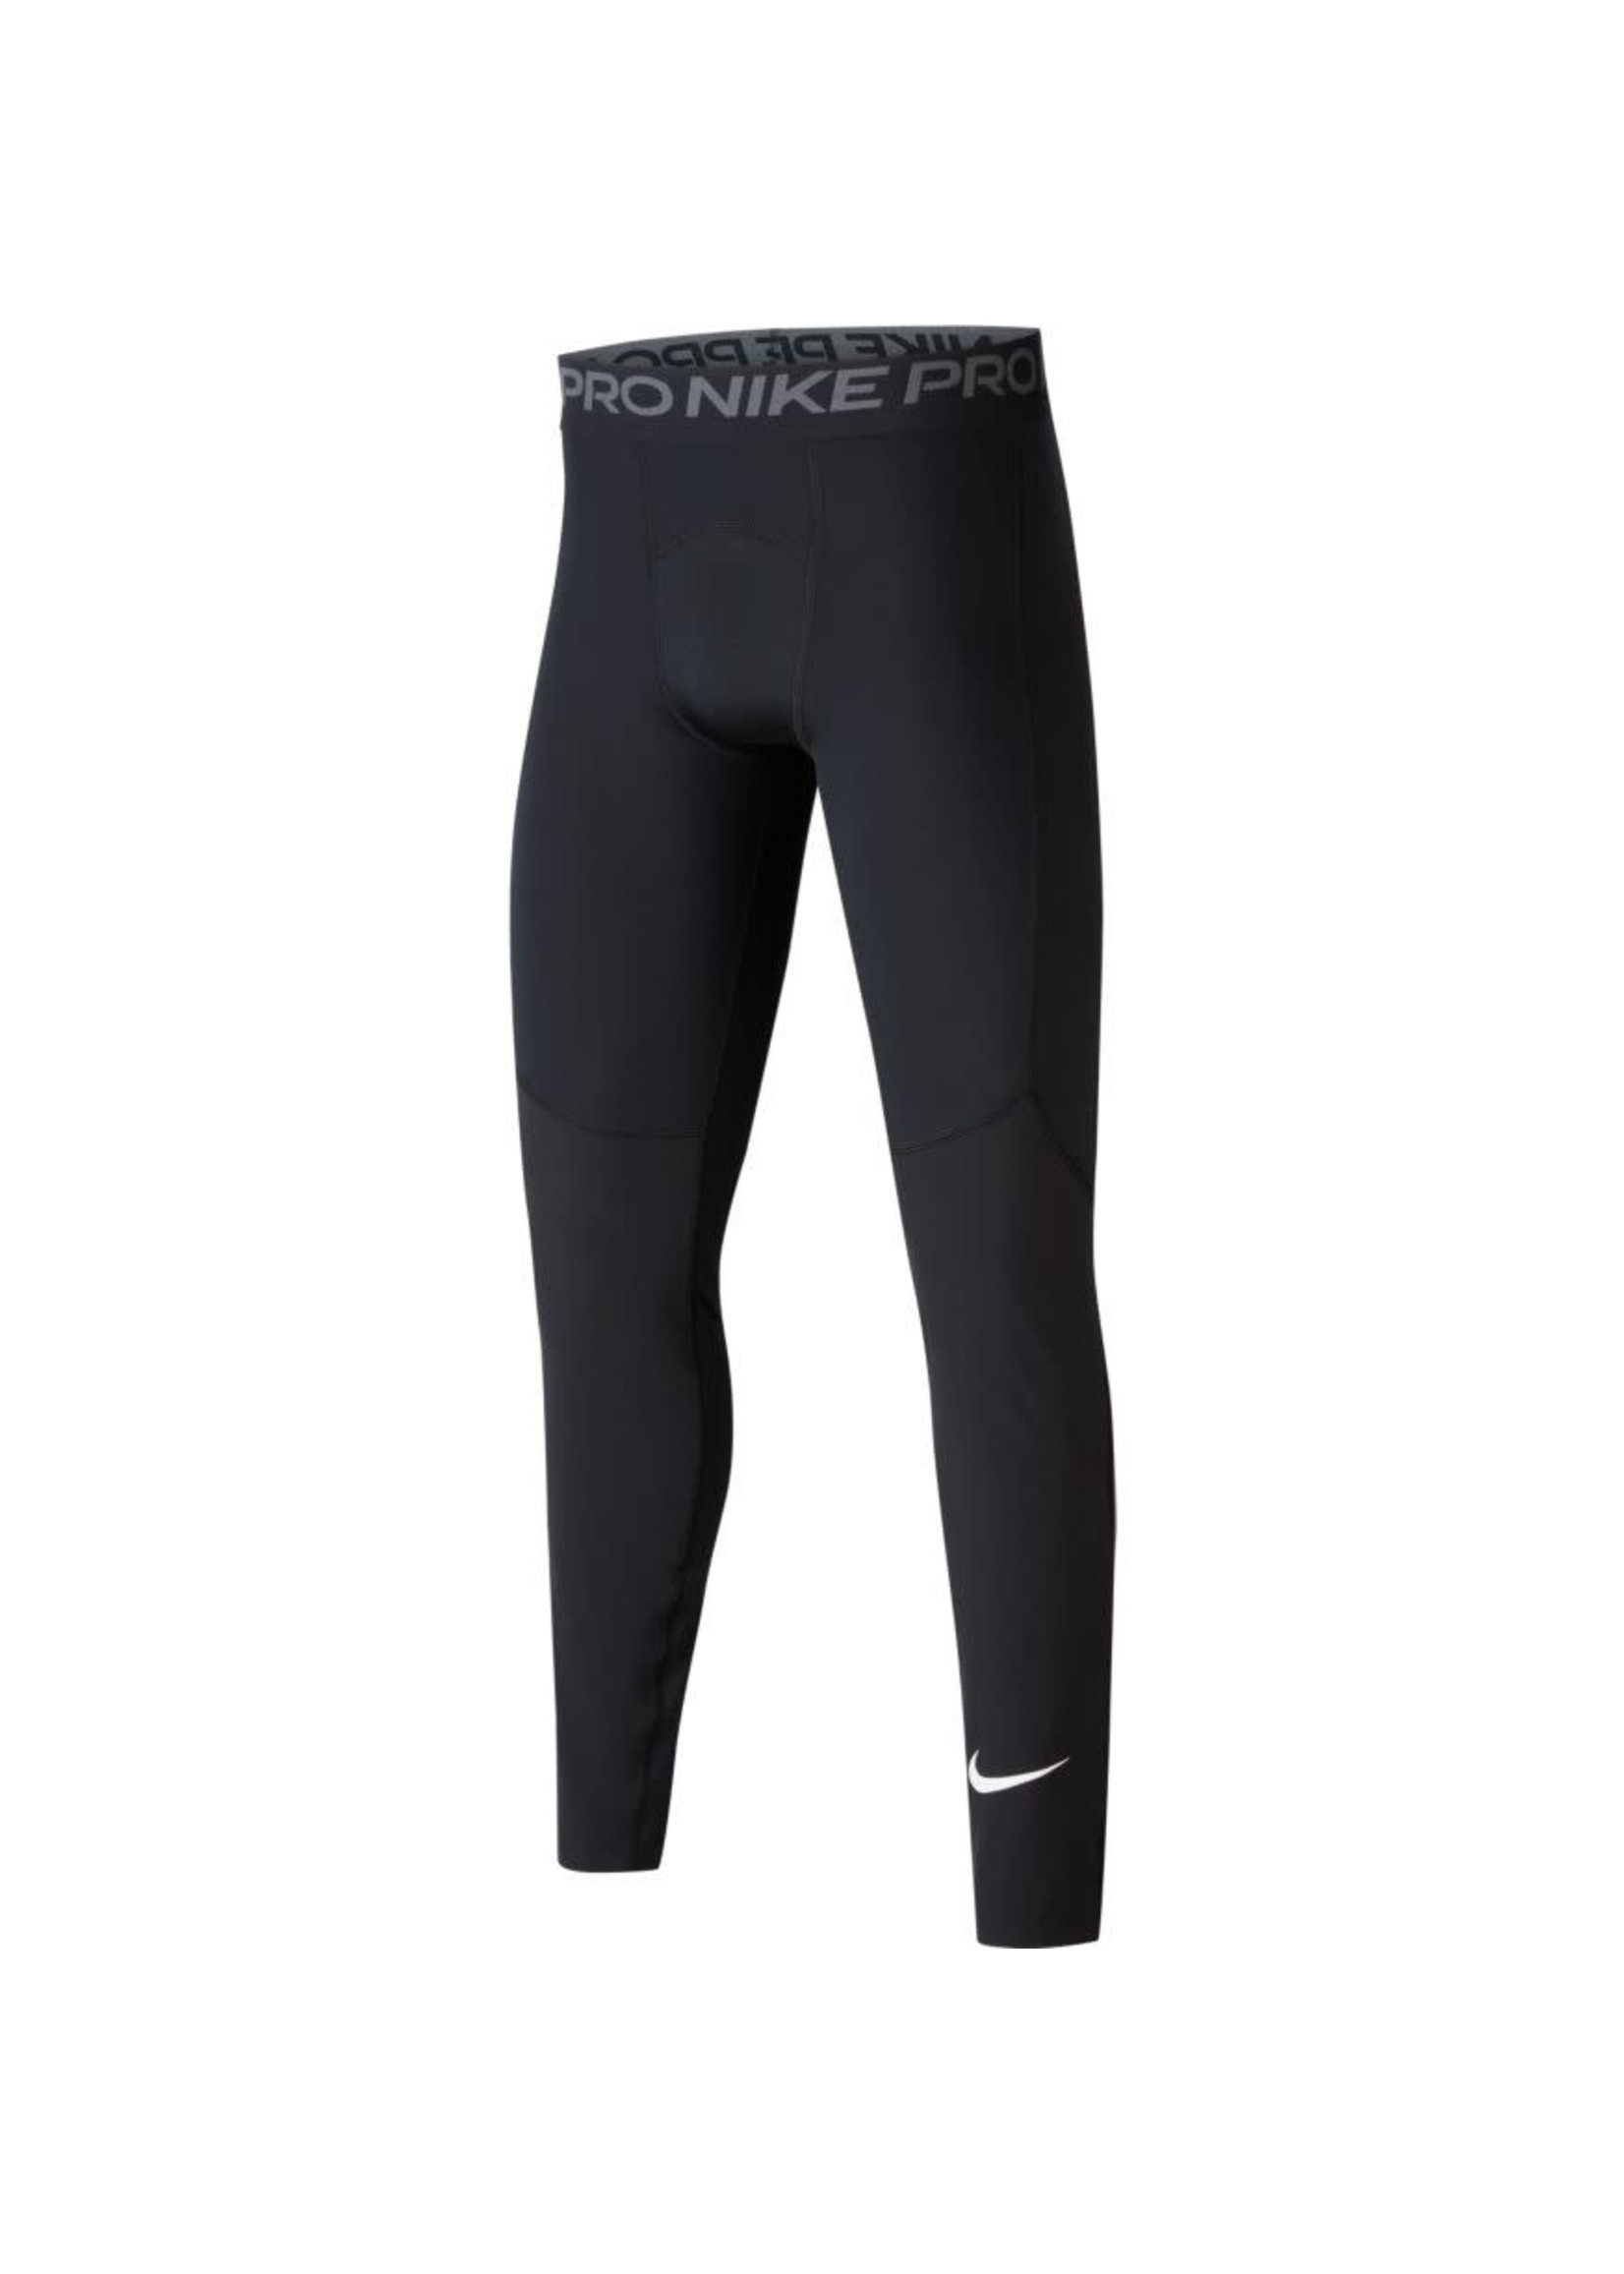 Nike Pro Tight Fit Compression Pants